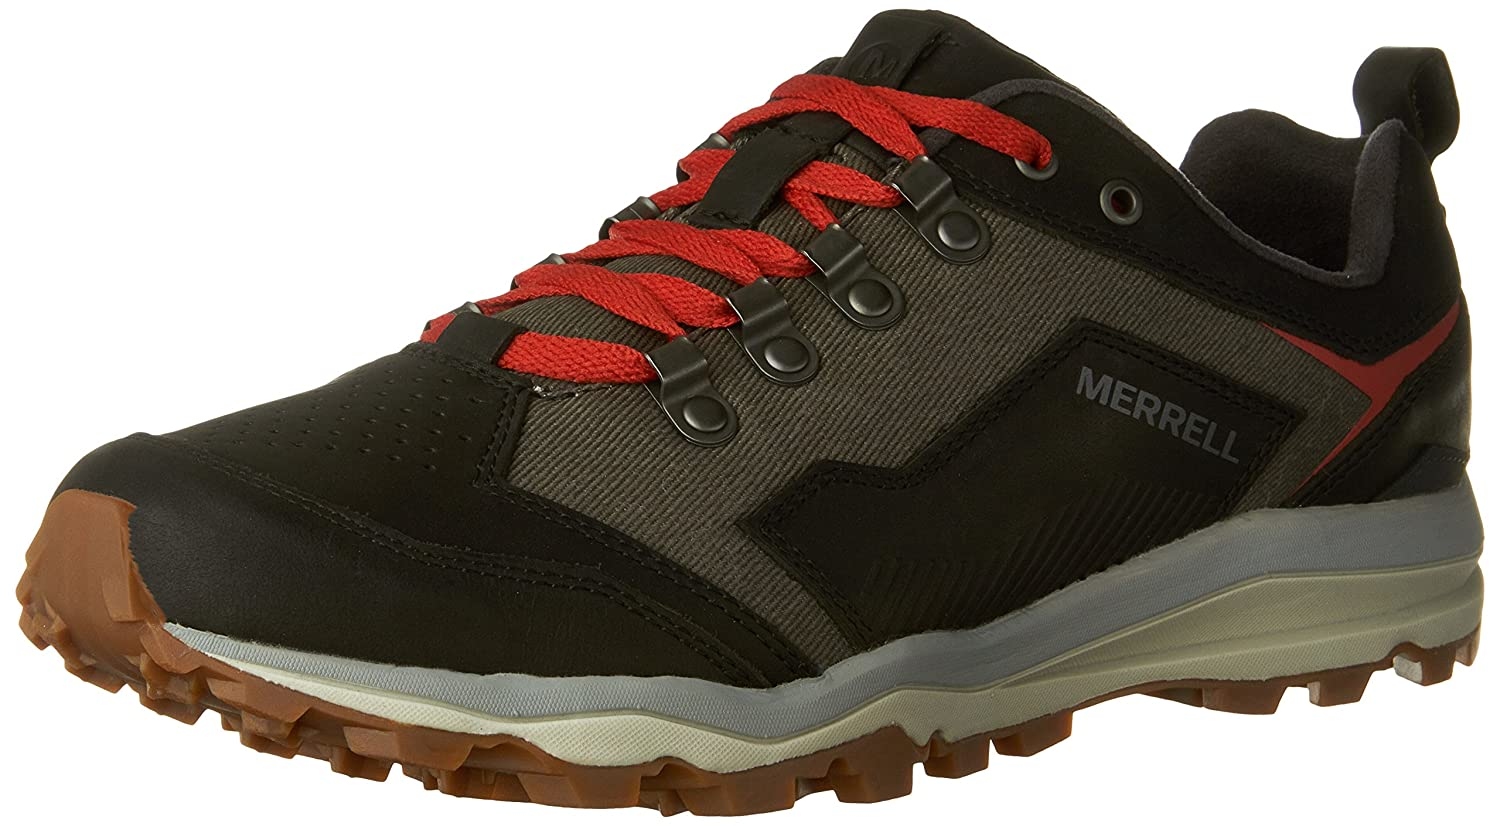 Merrell Herren All Out Niedrige Crusher M Niedrige Out Turnschuhe e3d1c4